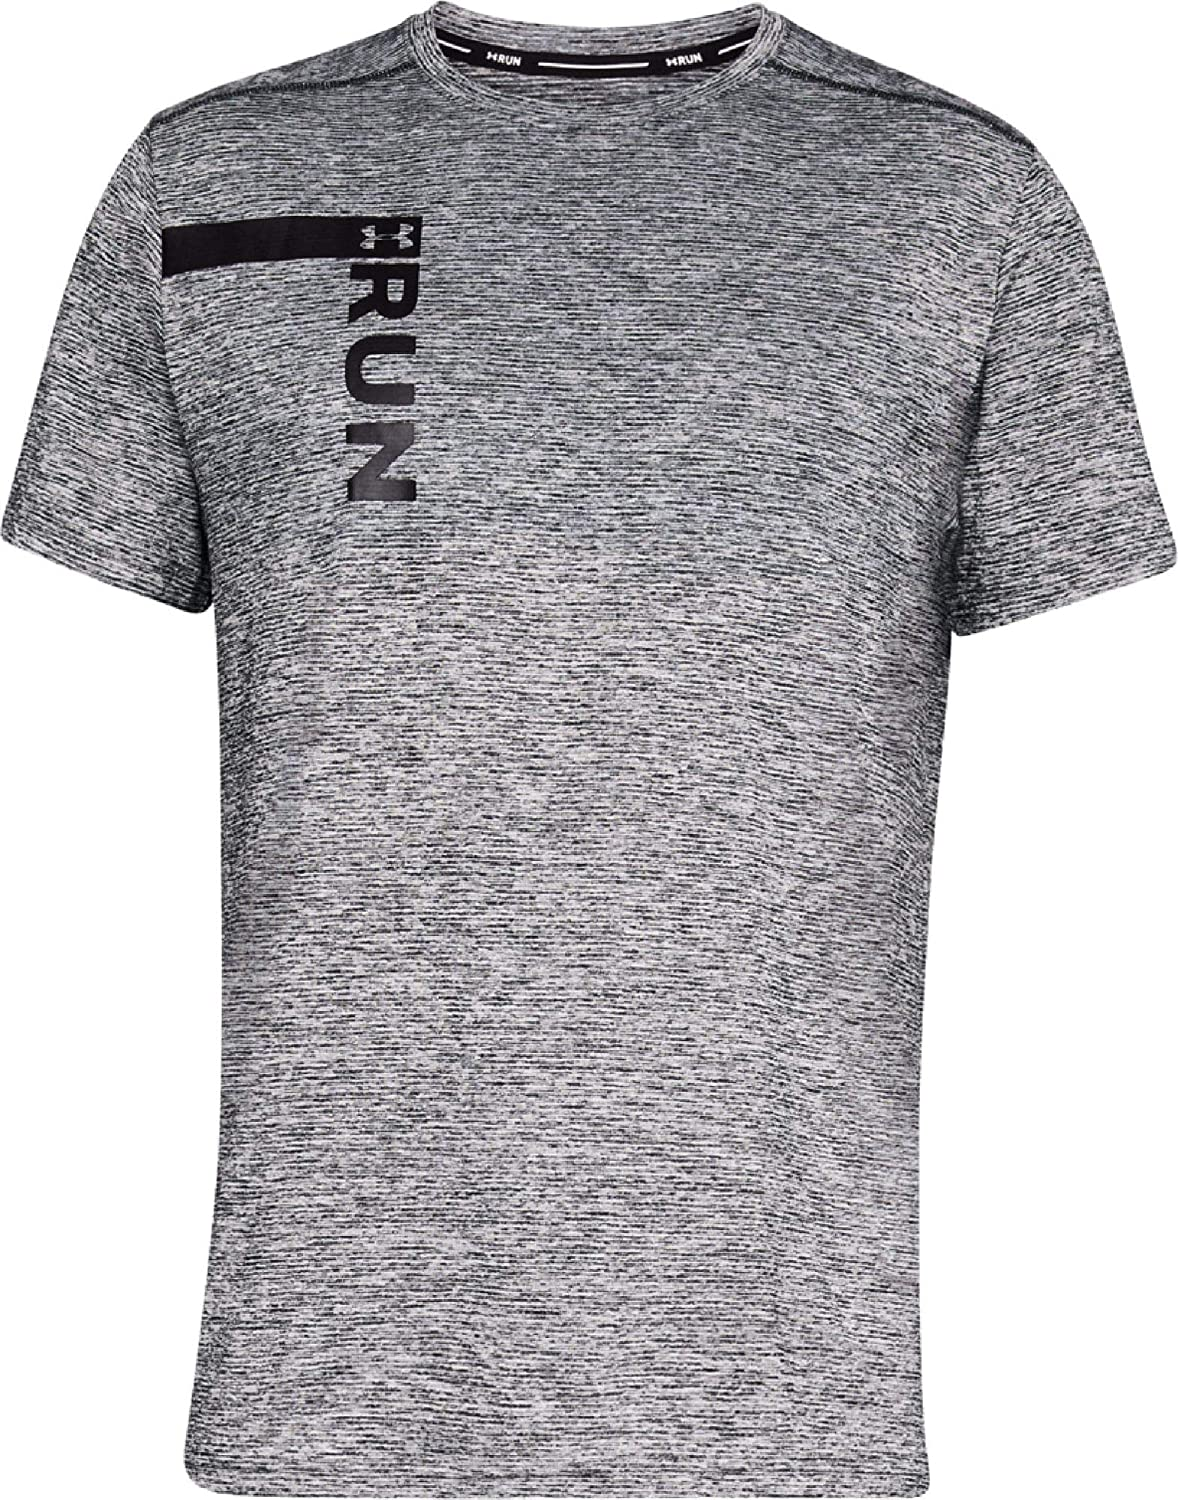 Under Armour Men's Run Tall Graphic Short Sleeve T-Shirts: Clothing